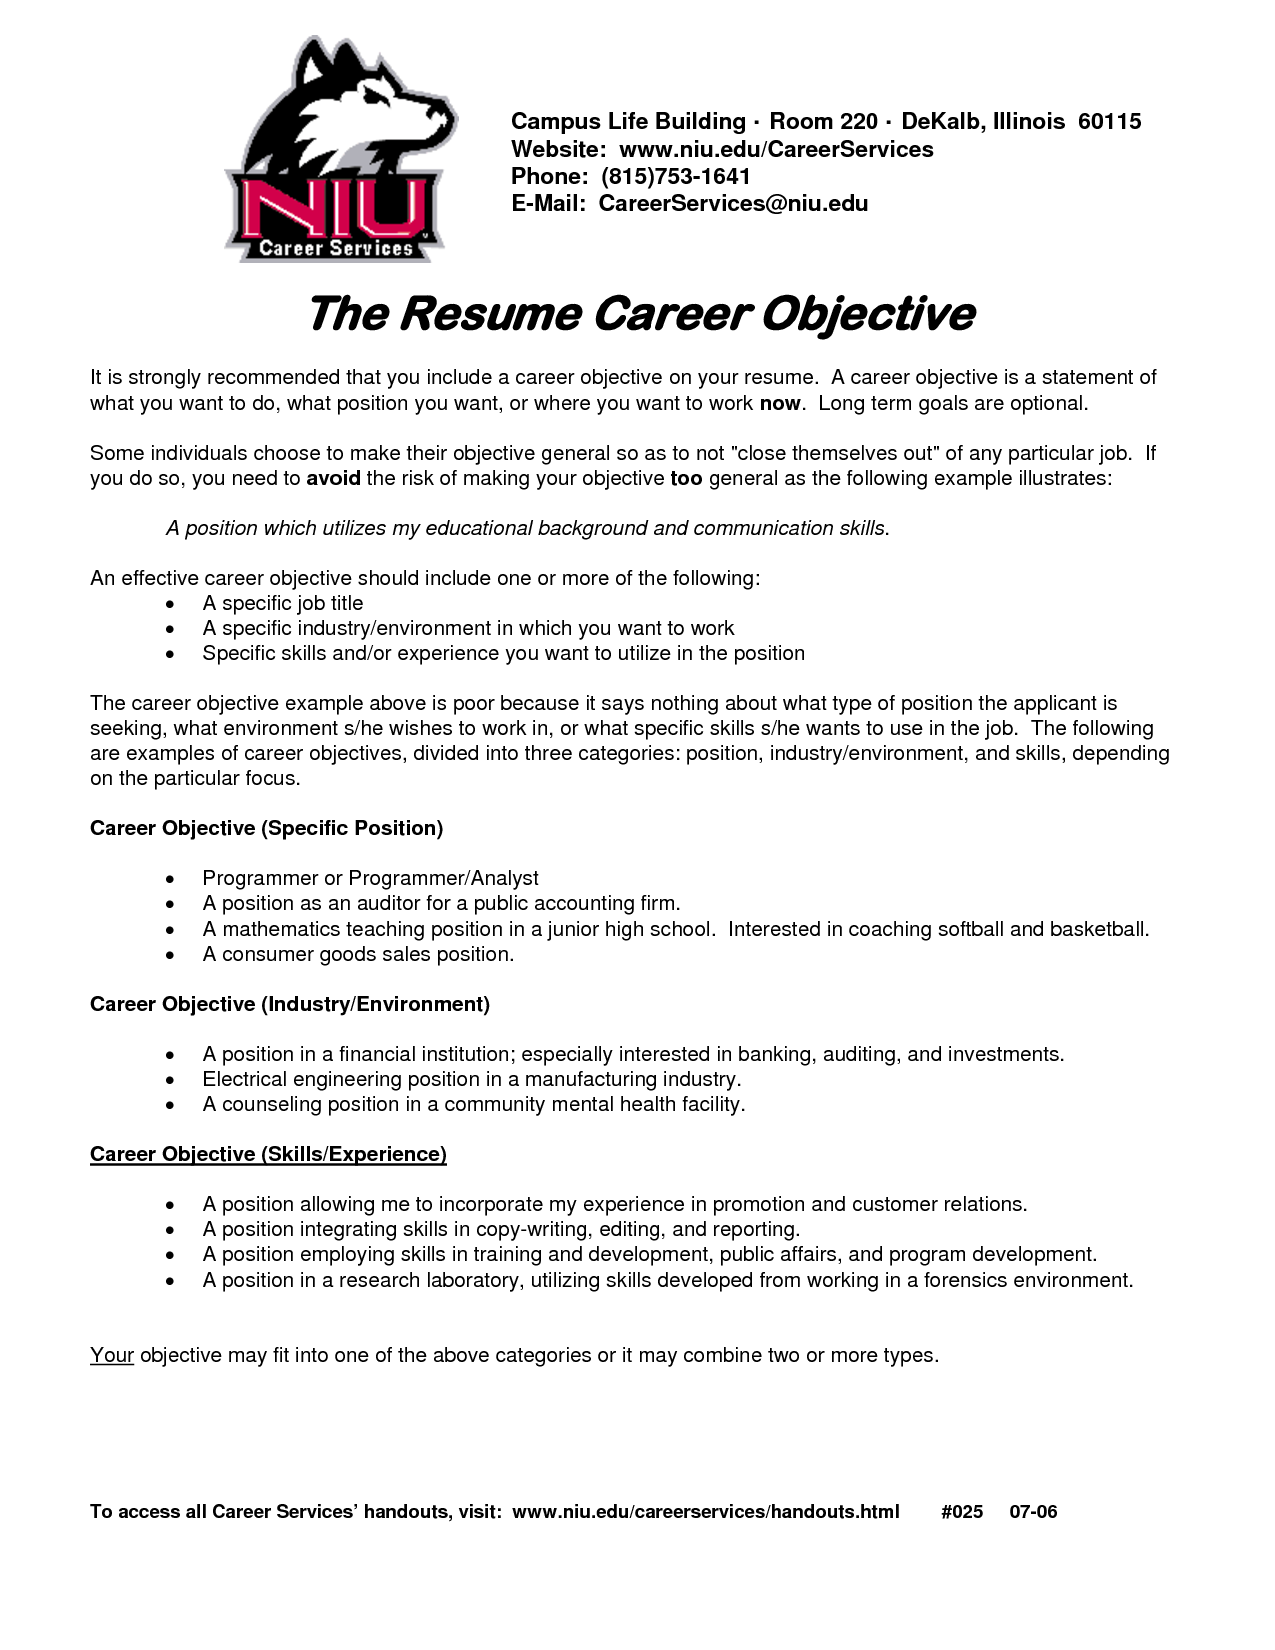 Job Objective On Resume Httpswwwgooglesearchqobjective Resume  Resume